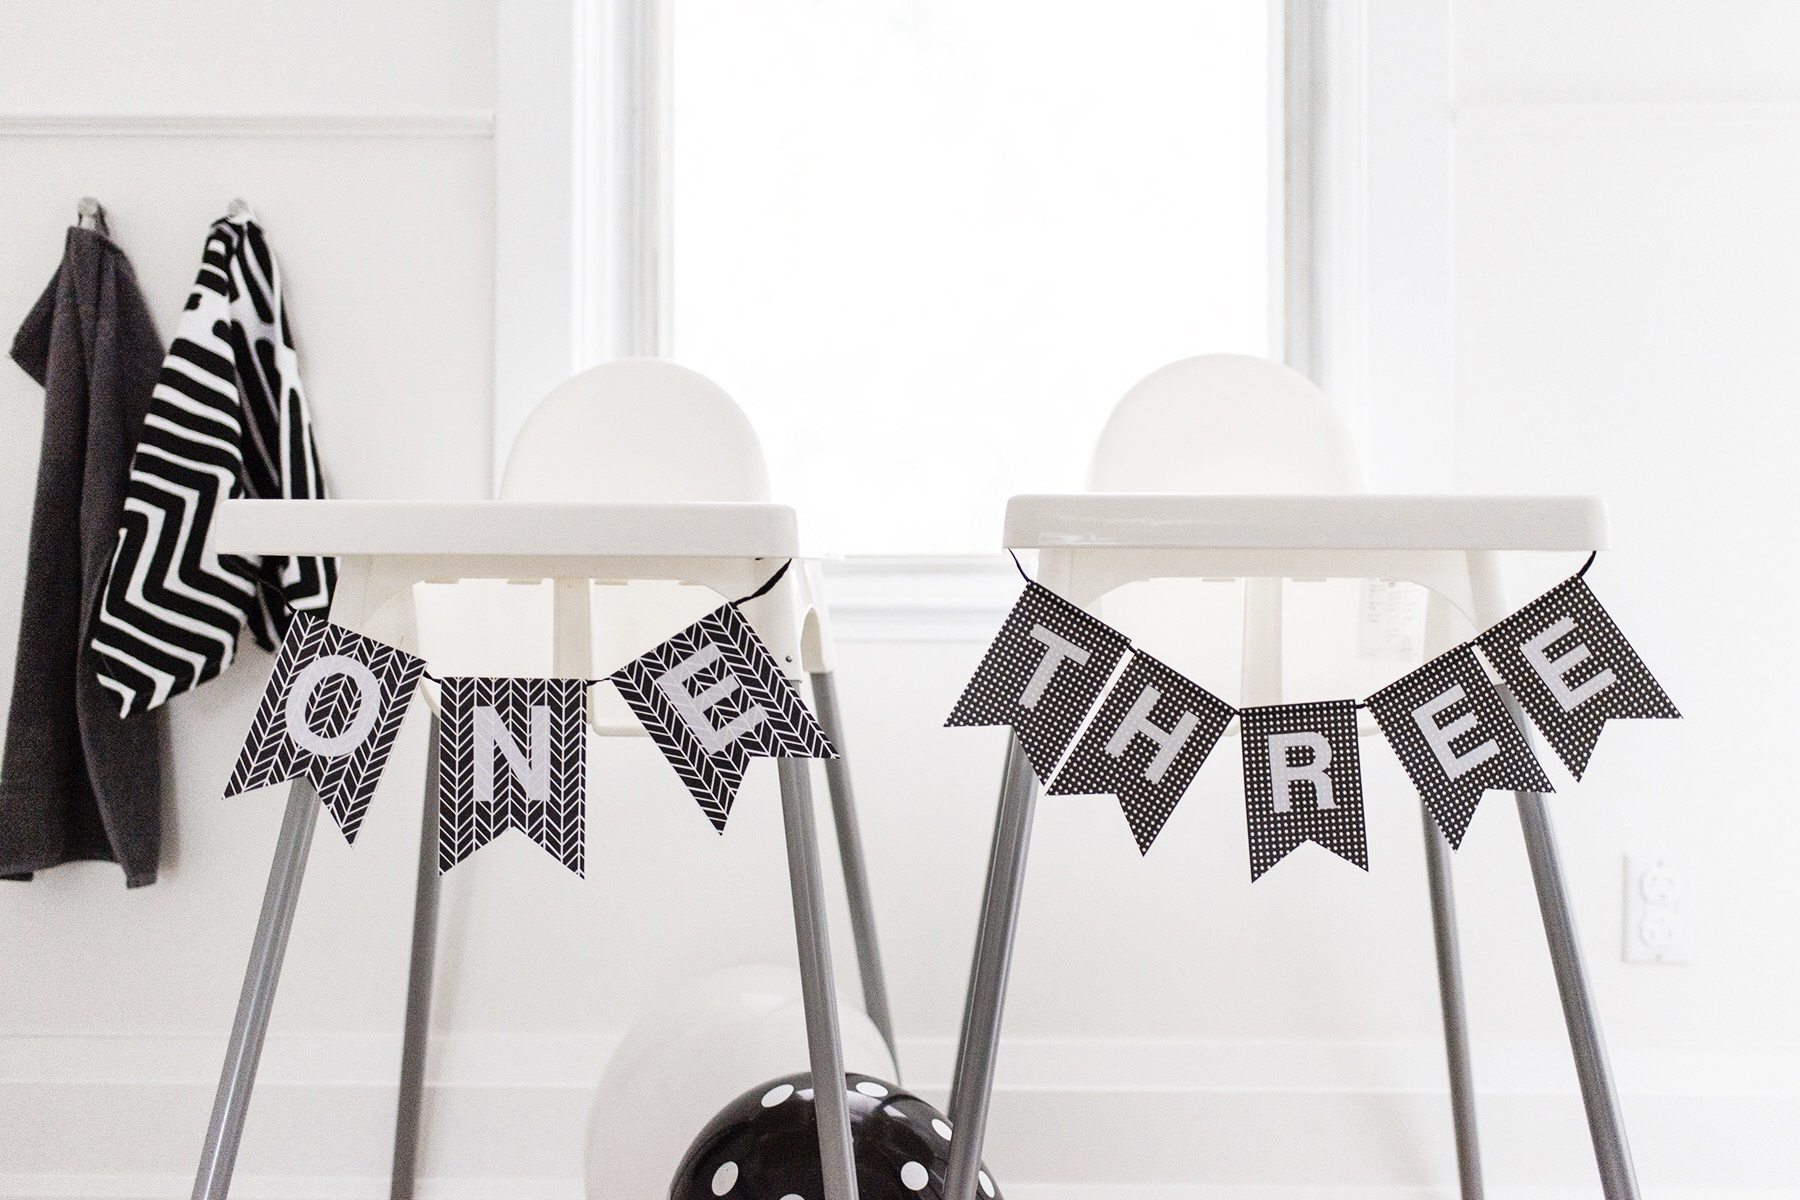 Kids birthday party high chair banner, black + white / monochrome, first birthday | Happy Grey Lucky